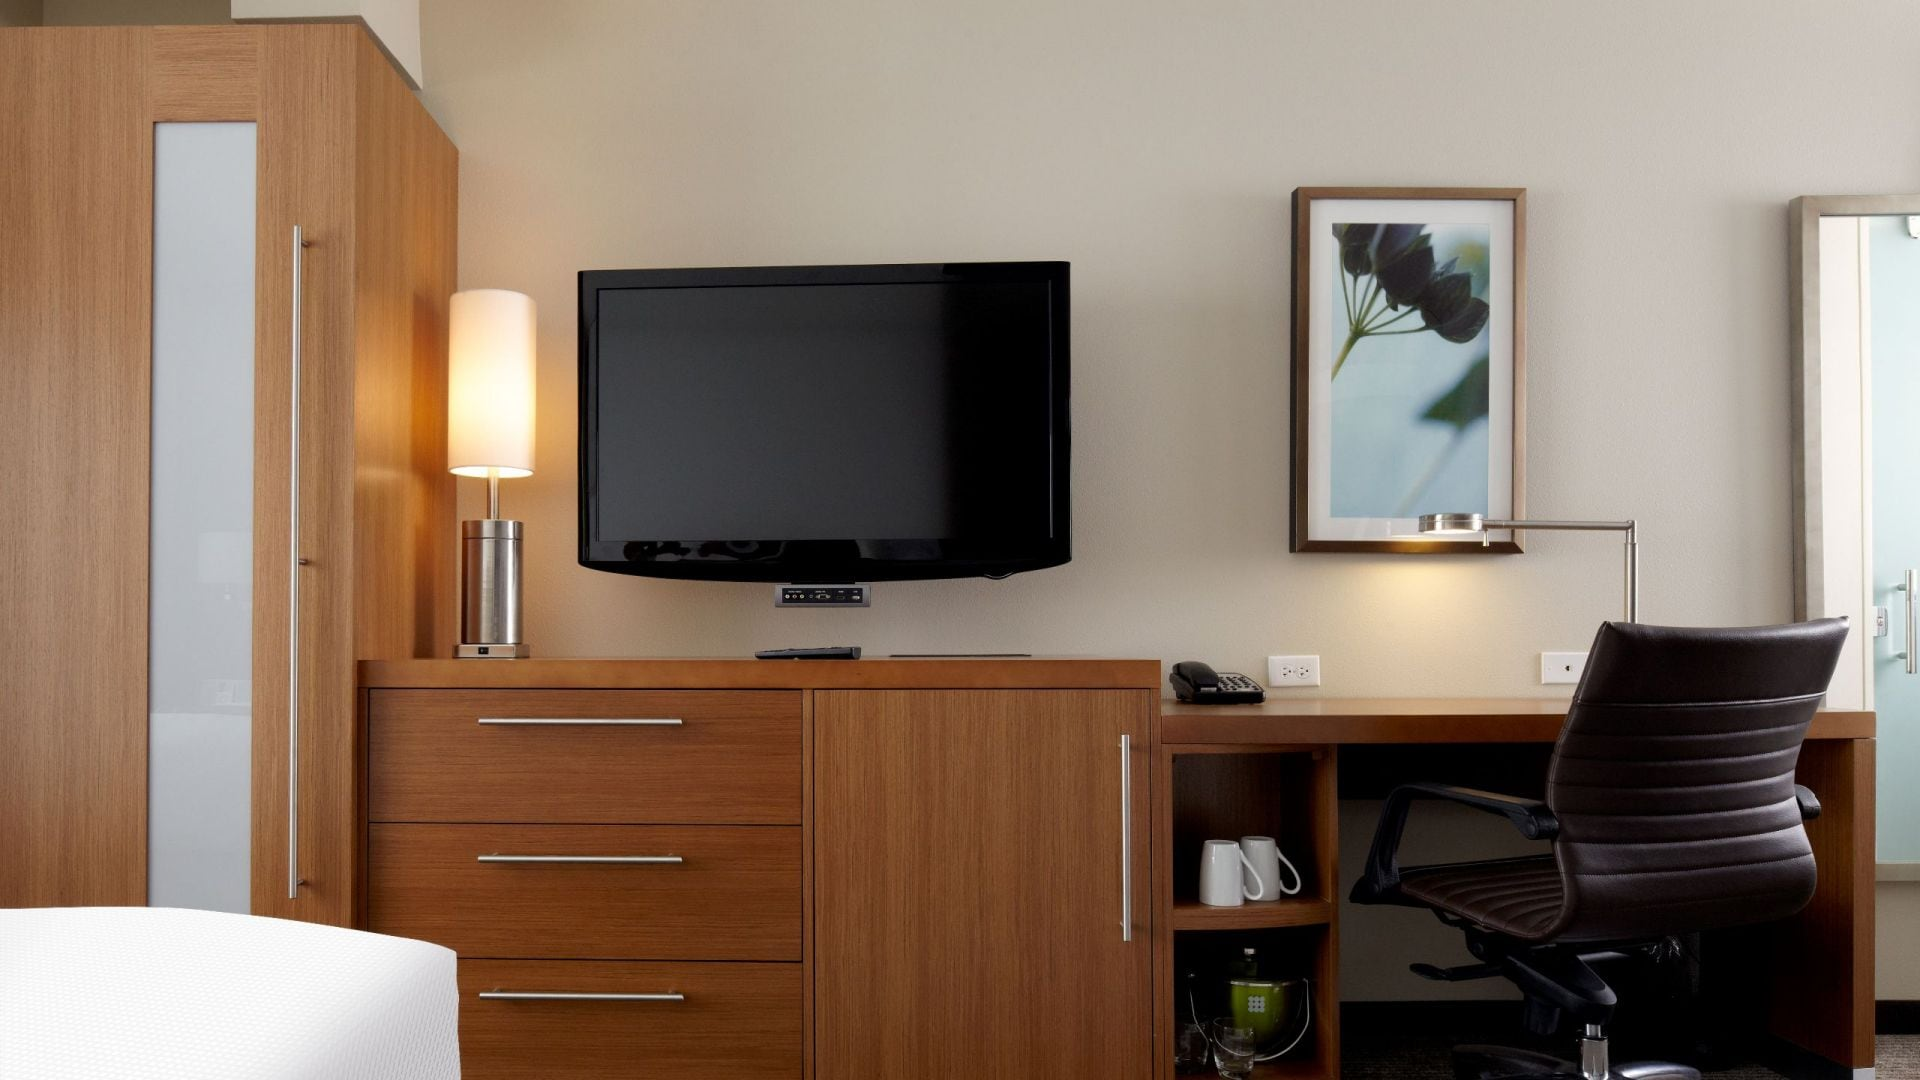 Hyatt Place Hurst, TX – Enjoy spacious and comfortable rooms